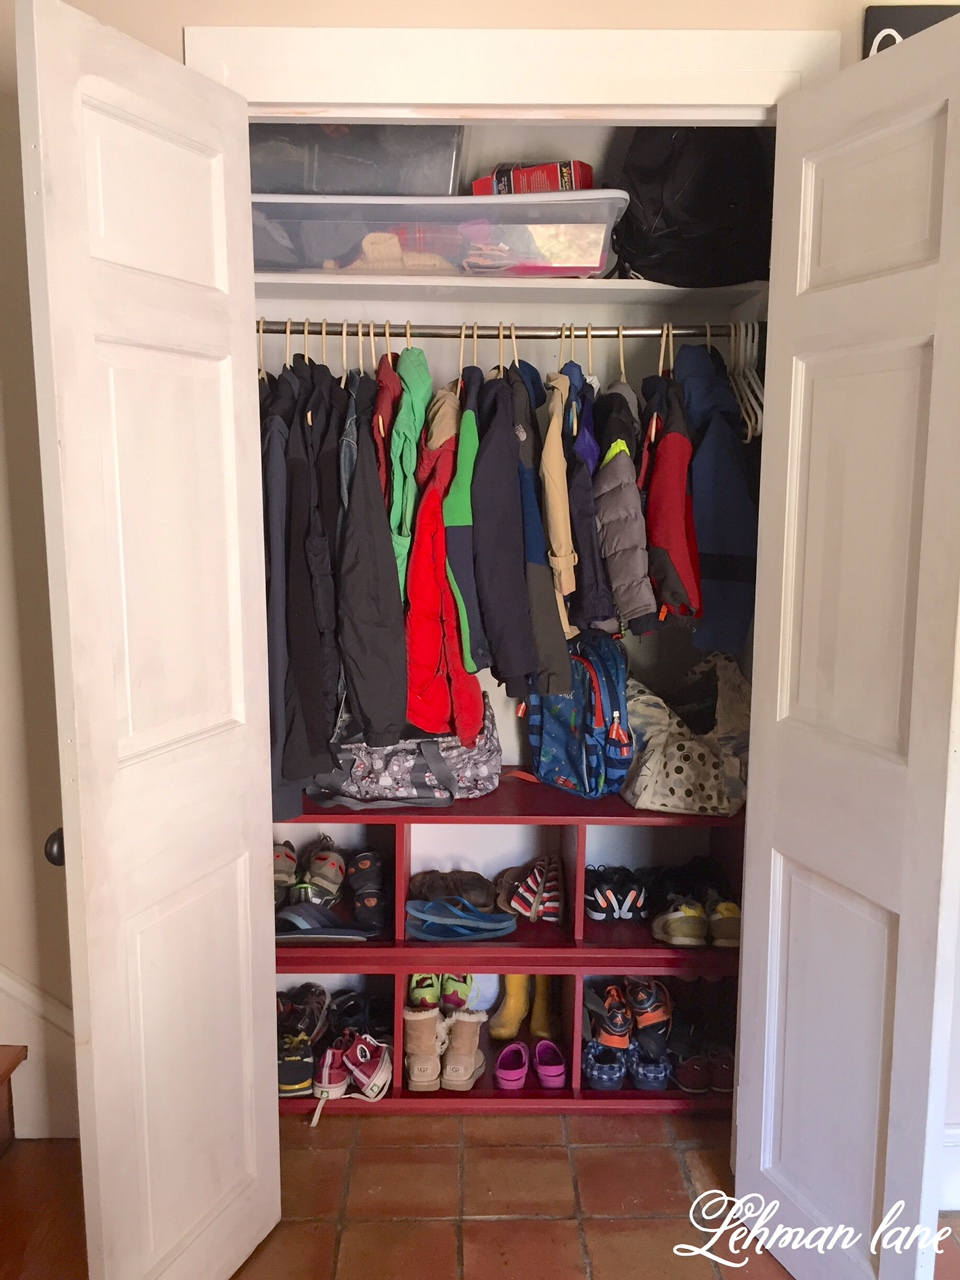 pdx organization organizer closet hanging storage shoe shelves utopia and utopiaalley alley purse cubbies